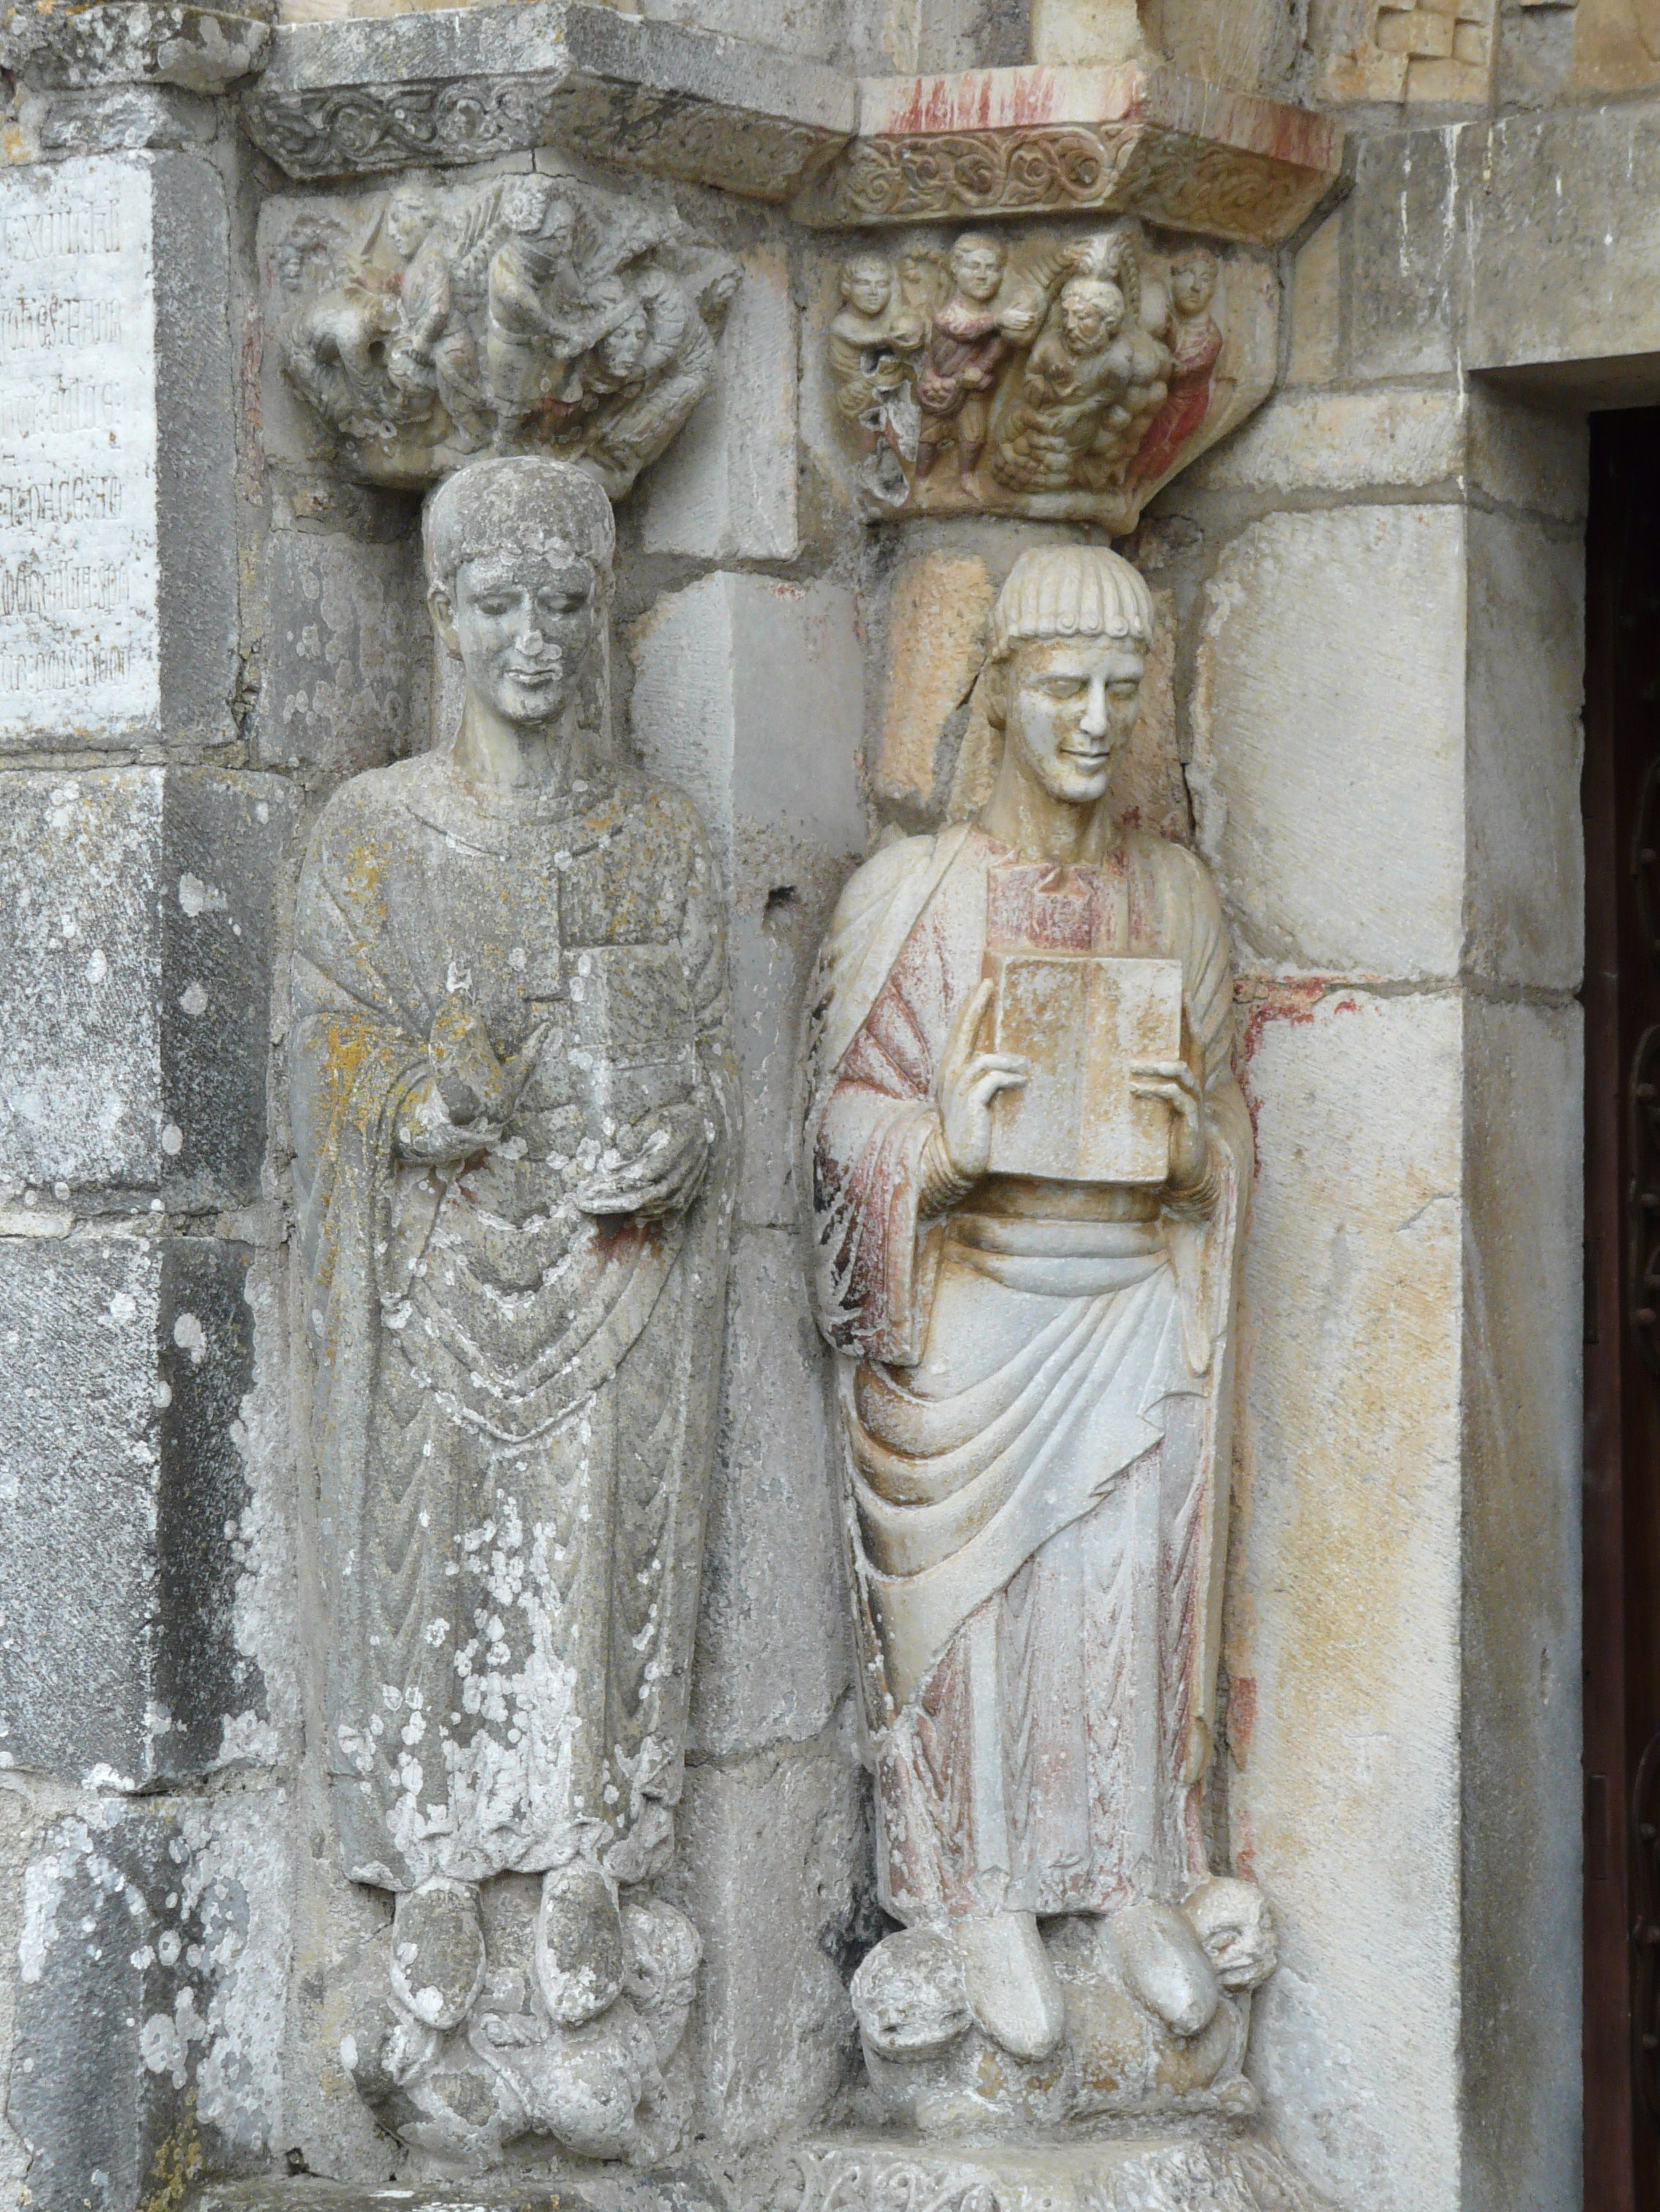 Saint-Just de Valcabrère, entrance, side column